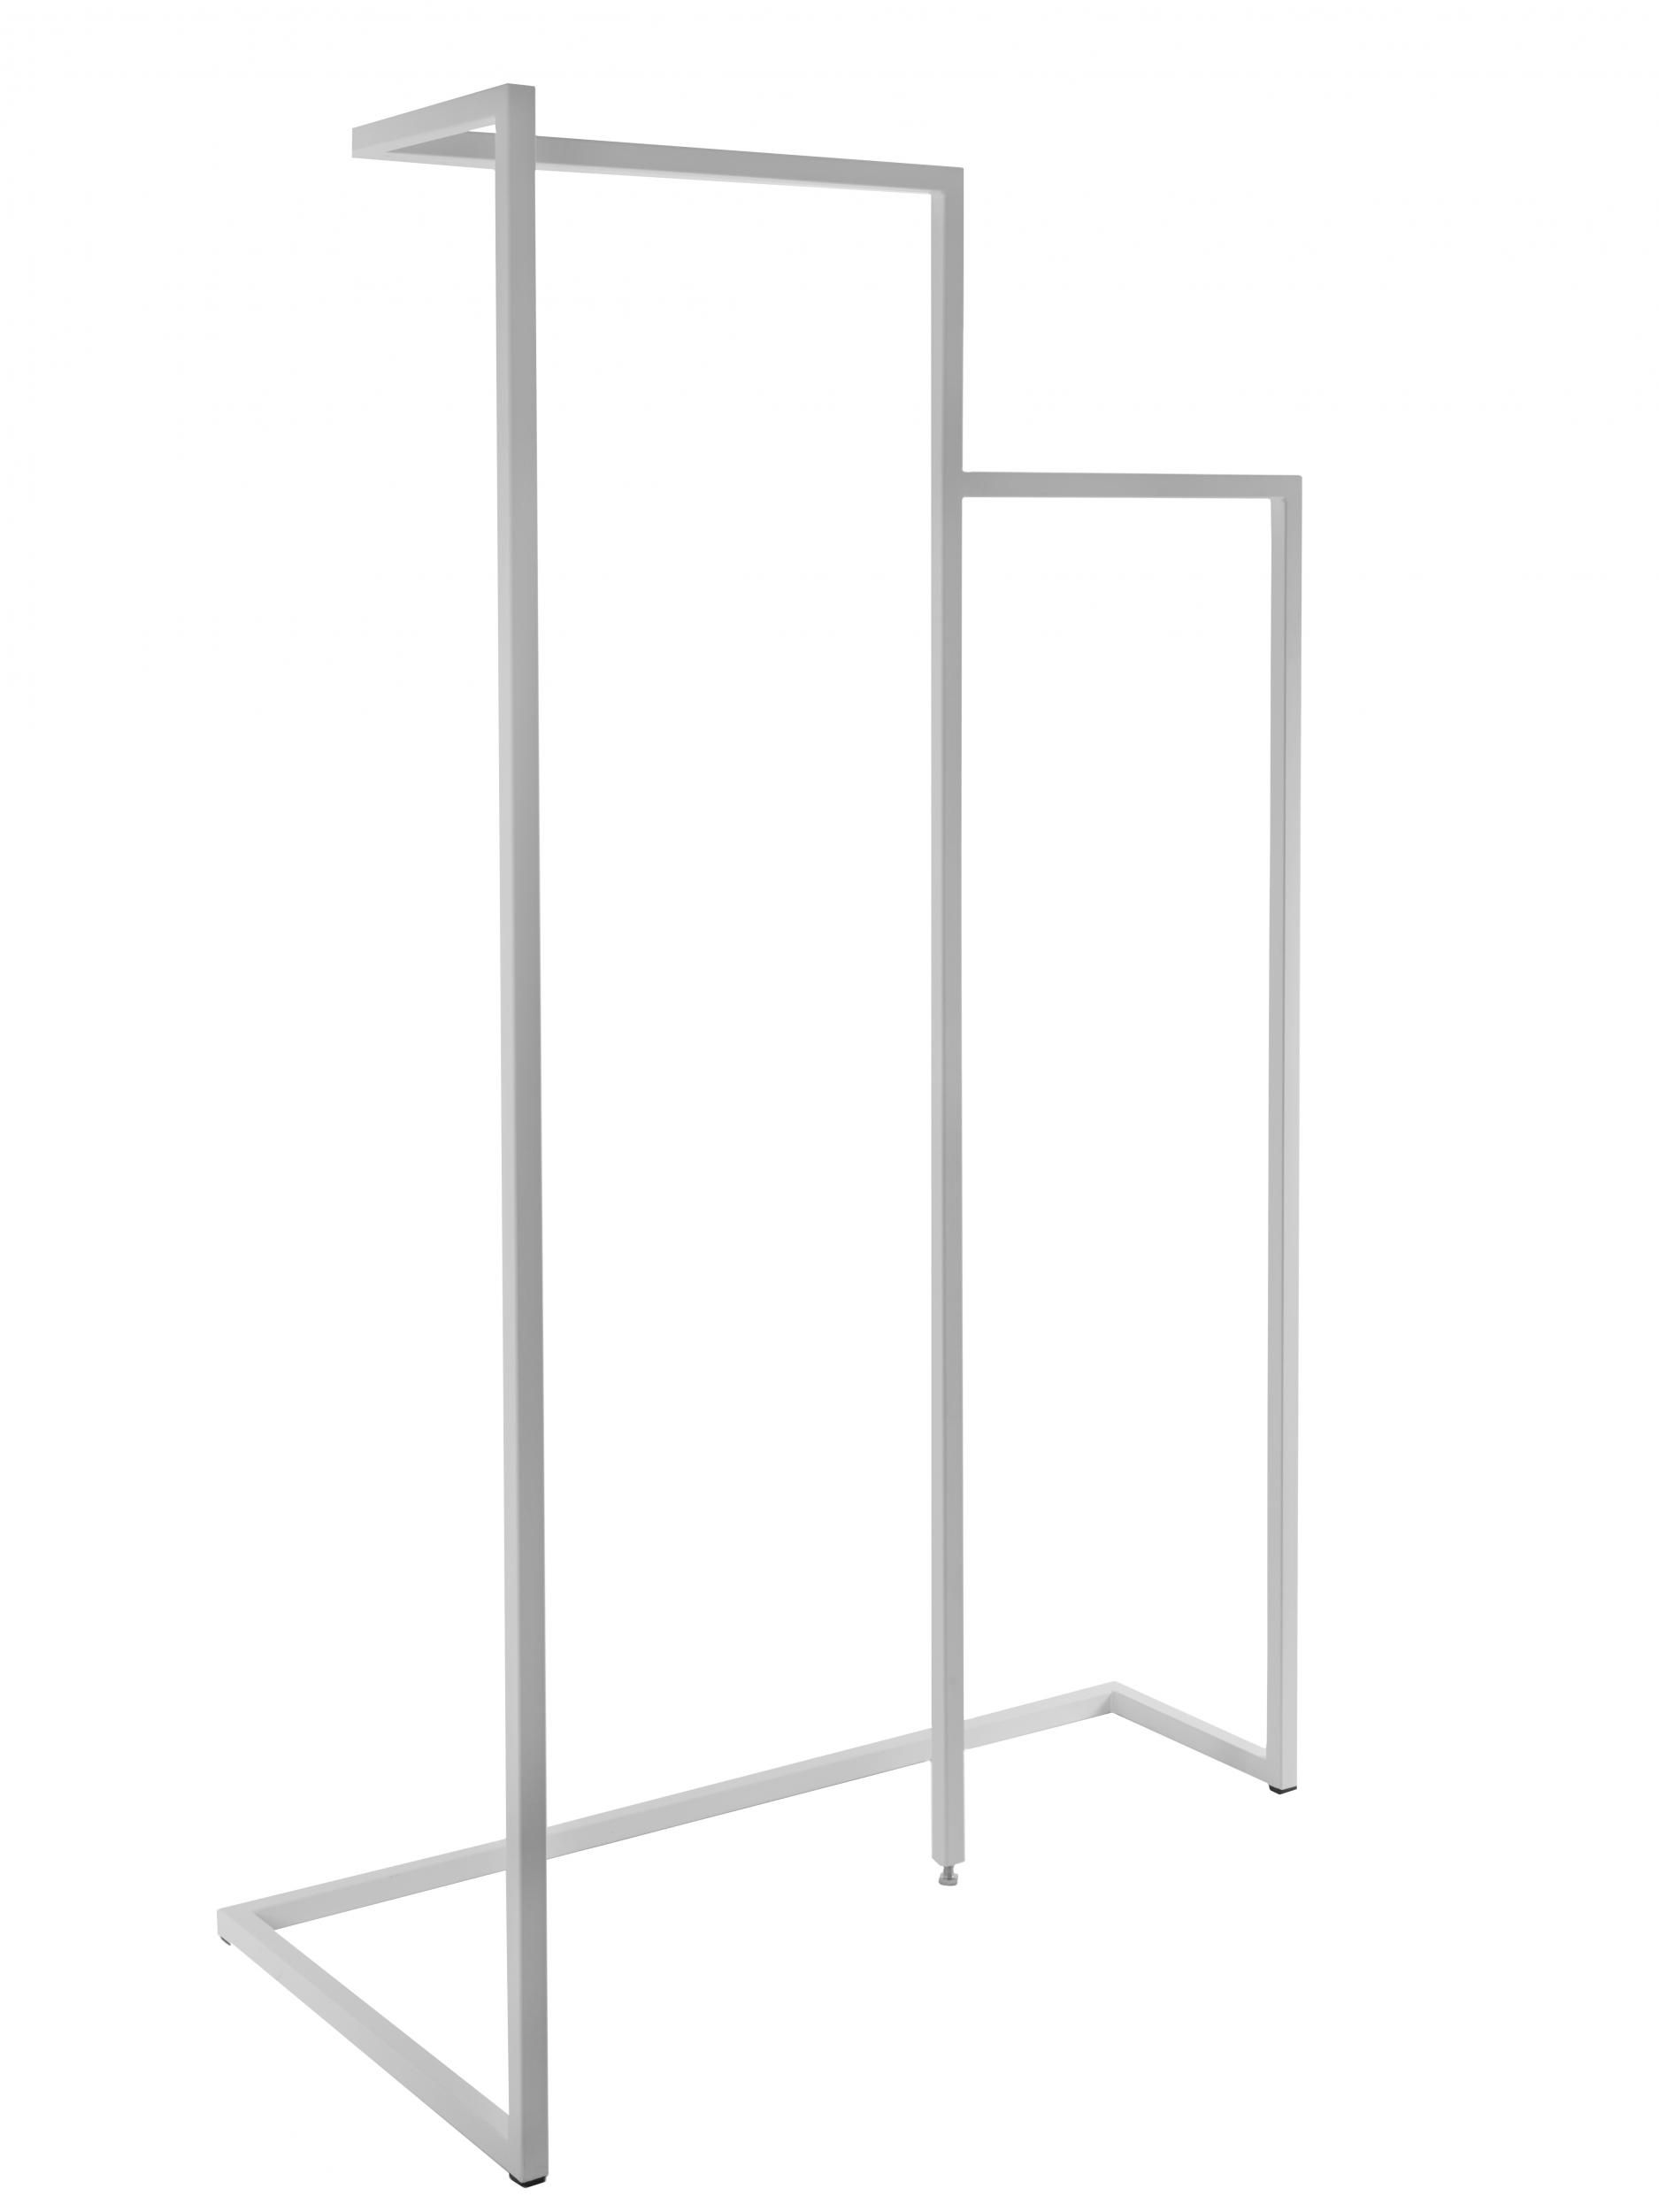 Furniture - Miscellaneous furniture - Oona Rack - L 110 x H 170 by Serax - White - Lacquered metal